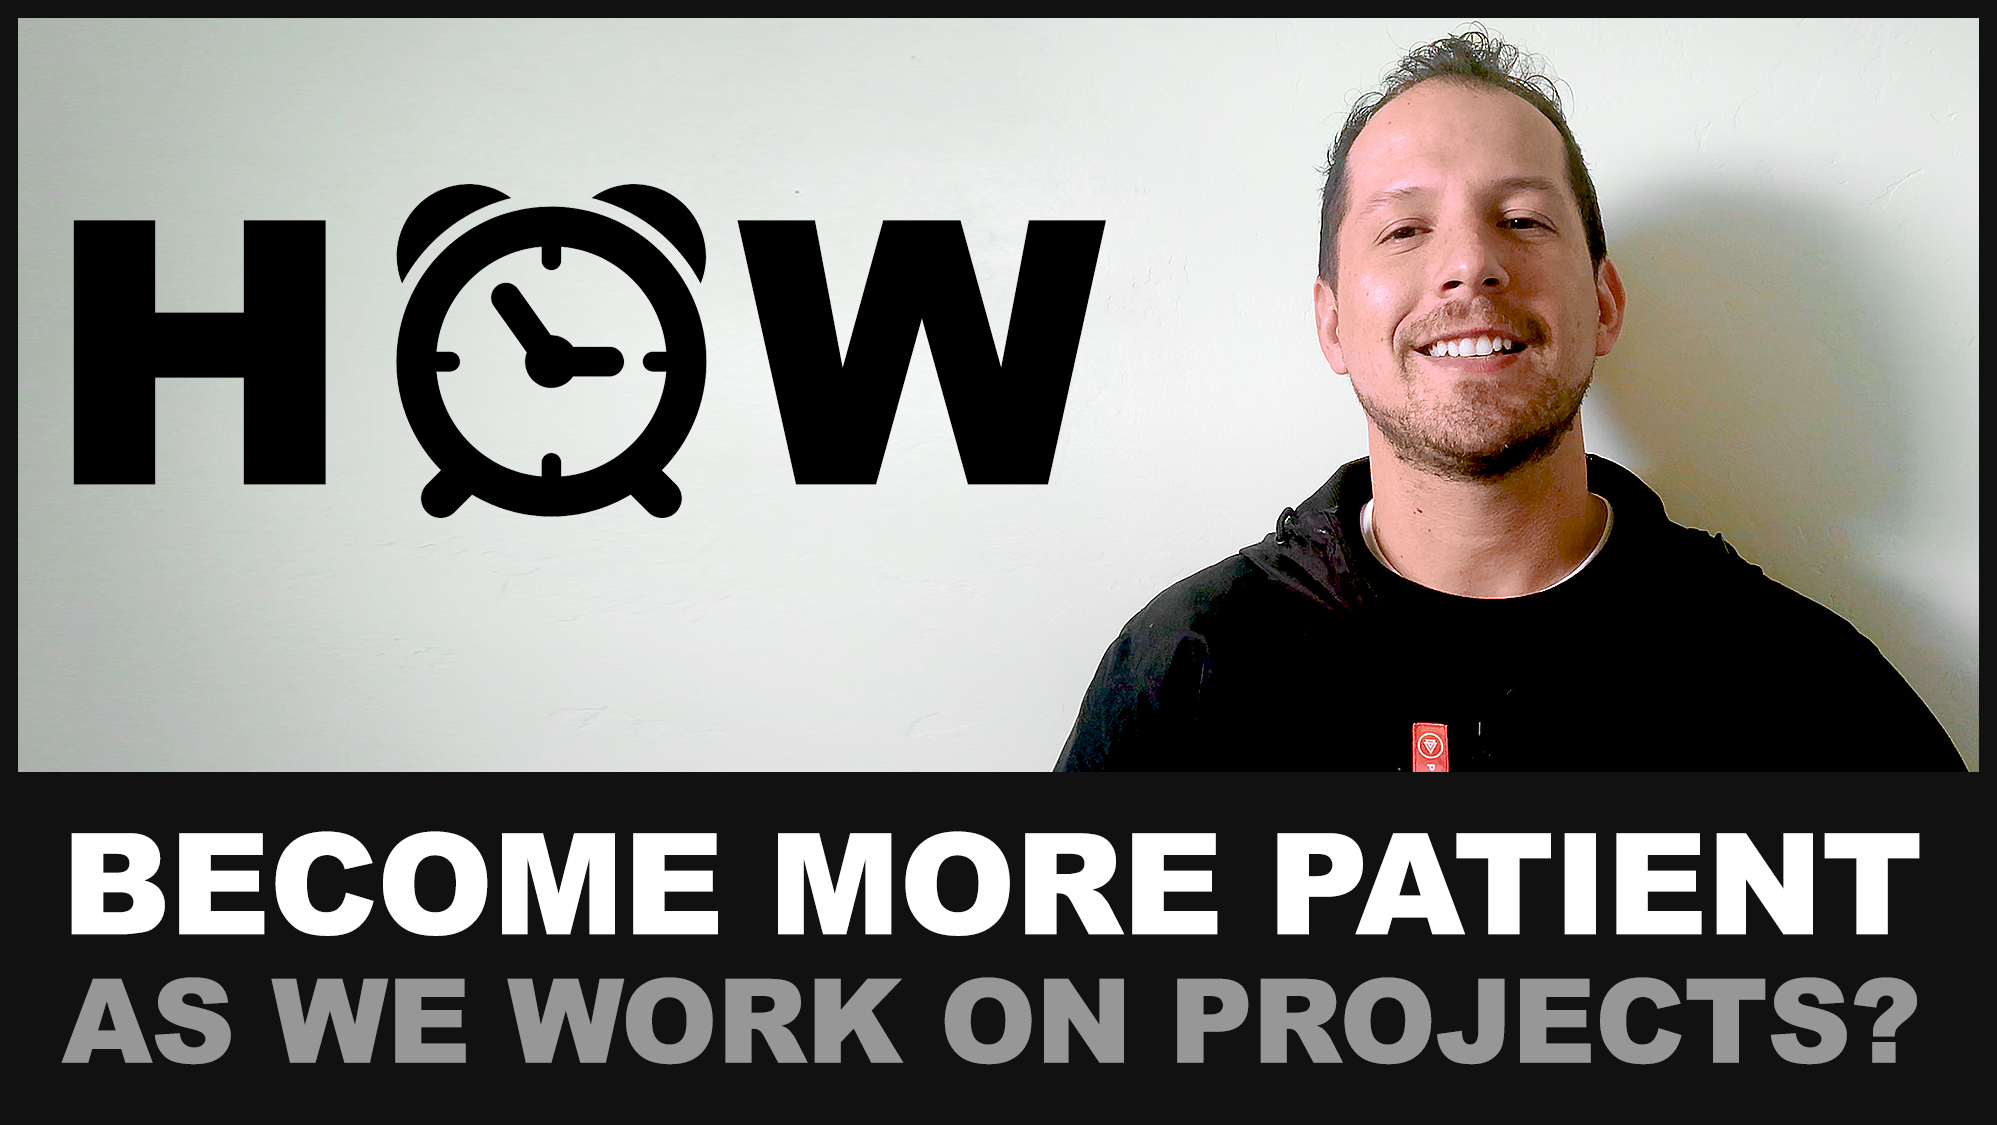 How to become more patient as we work on projects?